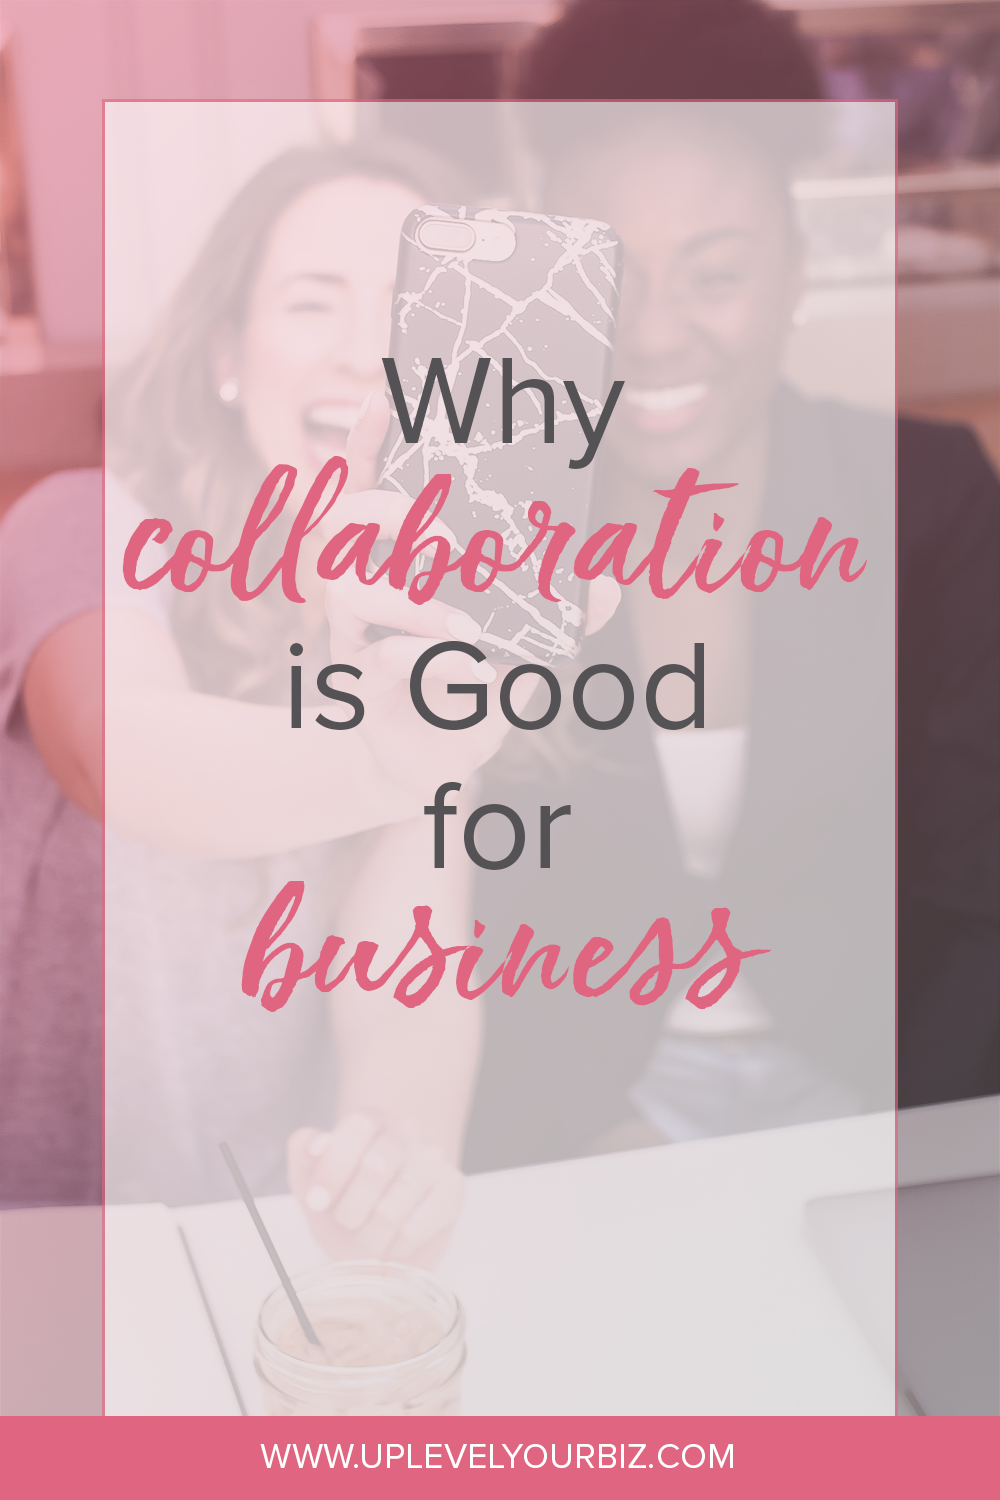 Why Collaborating is Good for Business